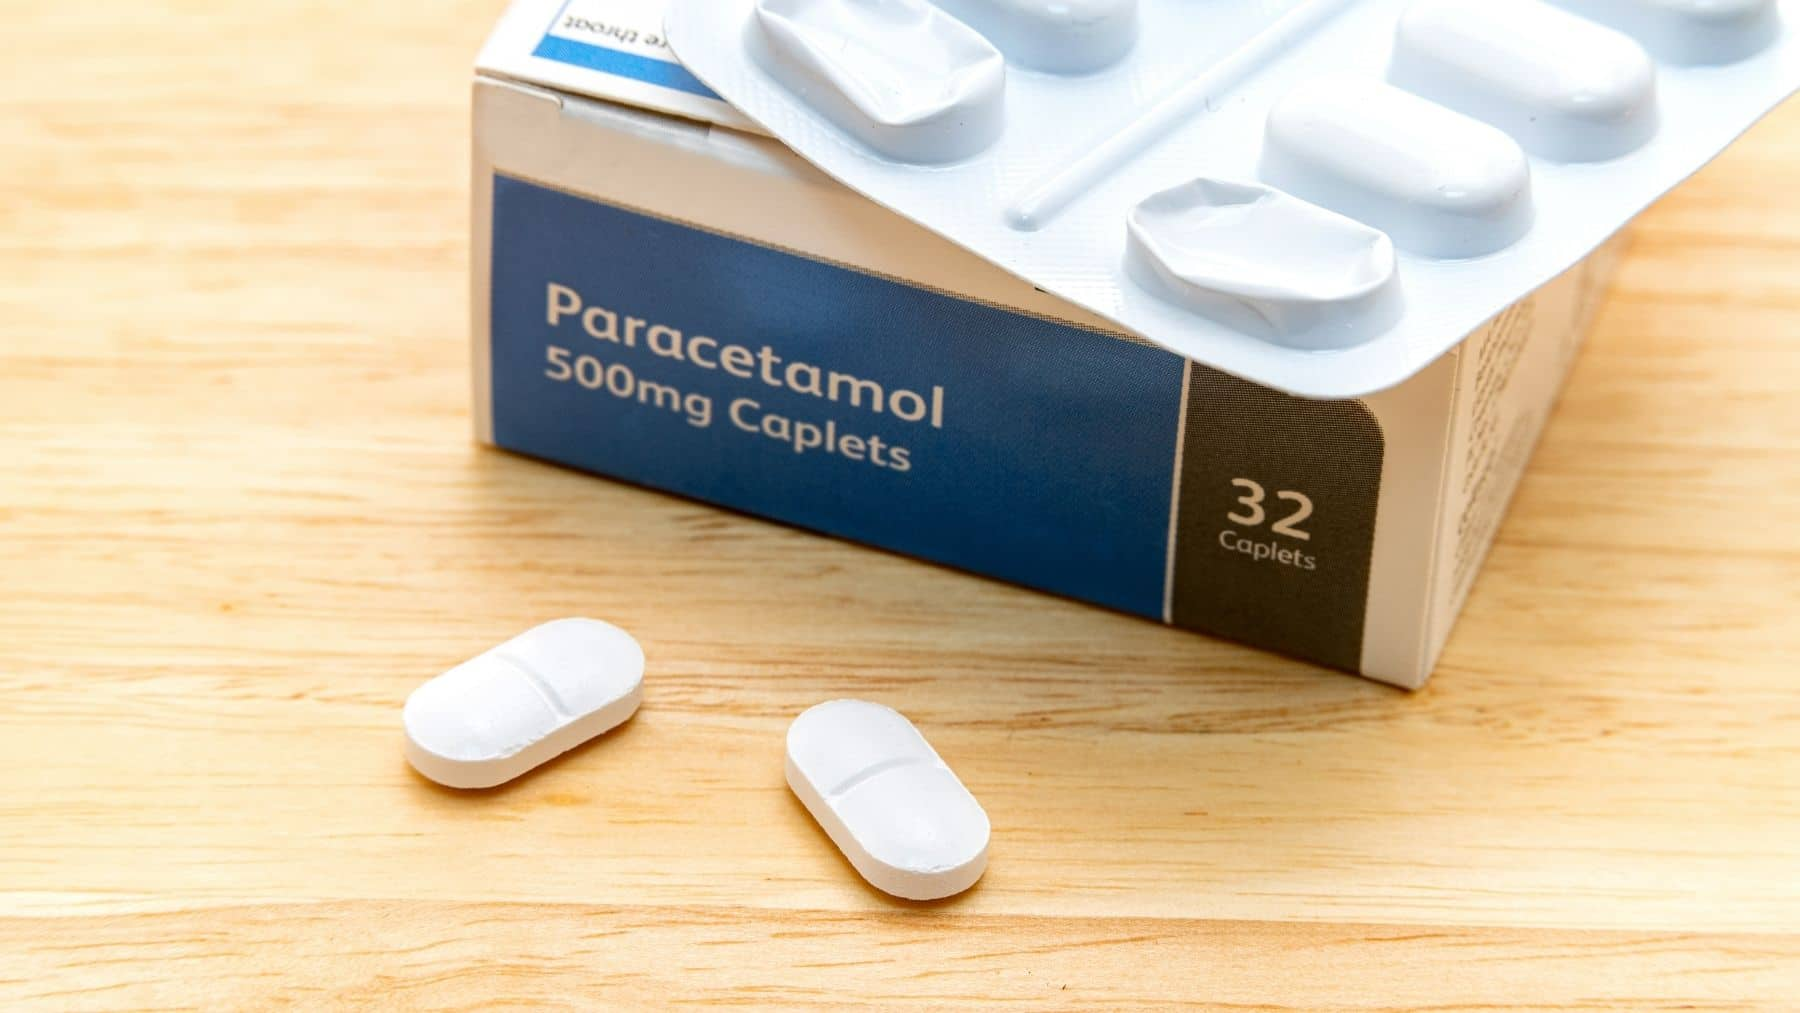 paracetamol-contraindications-and-side-effects